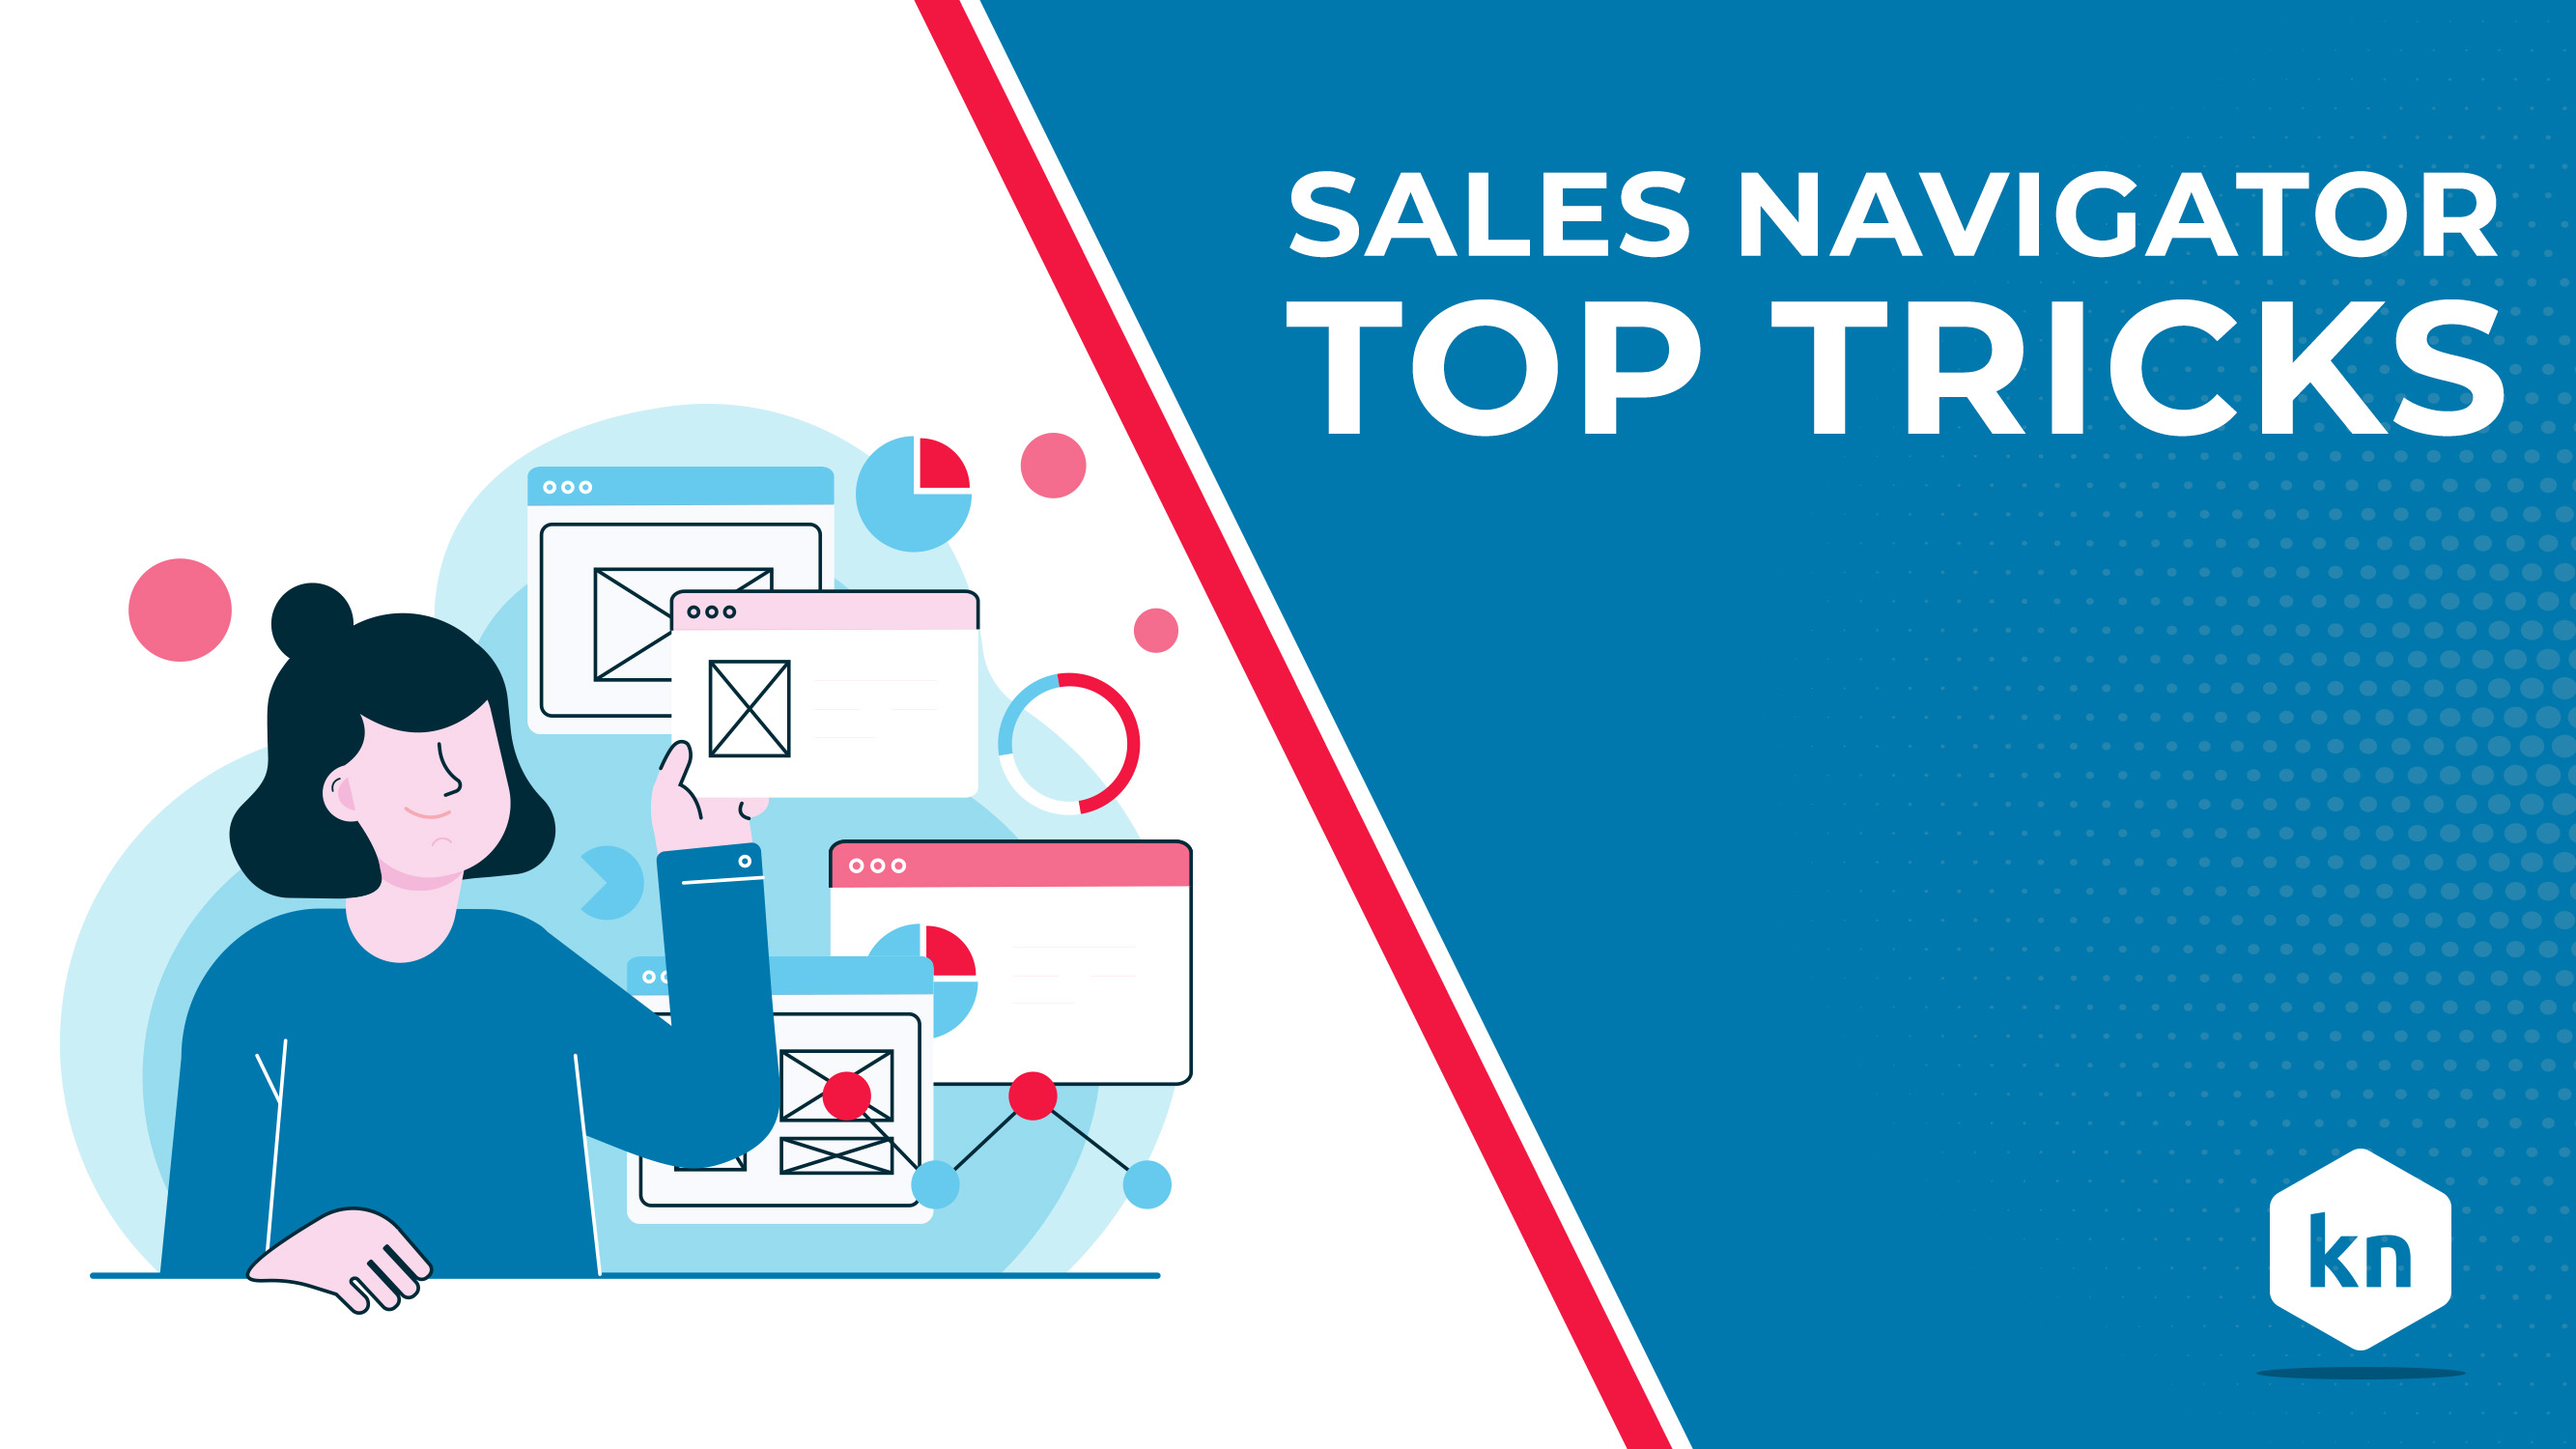 Sales Navigator Top Tricks